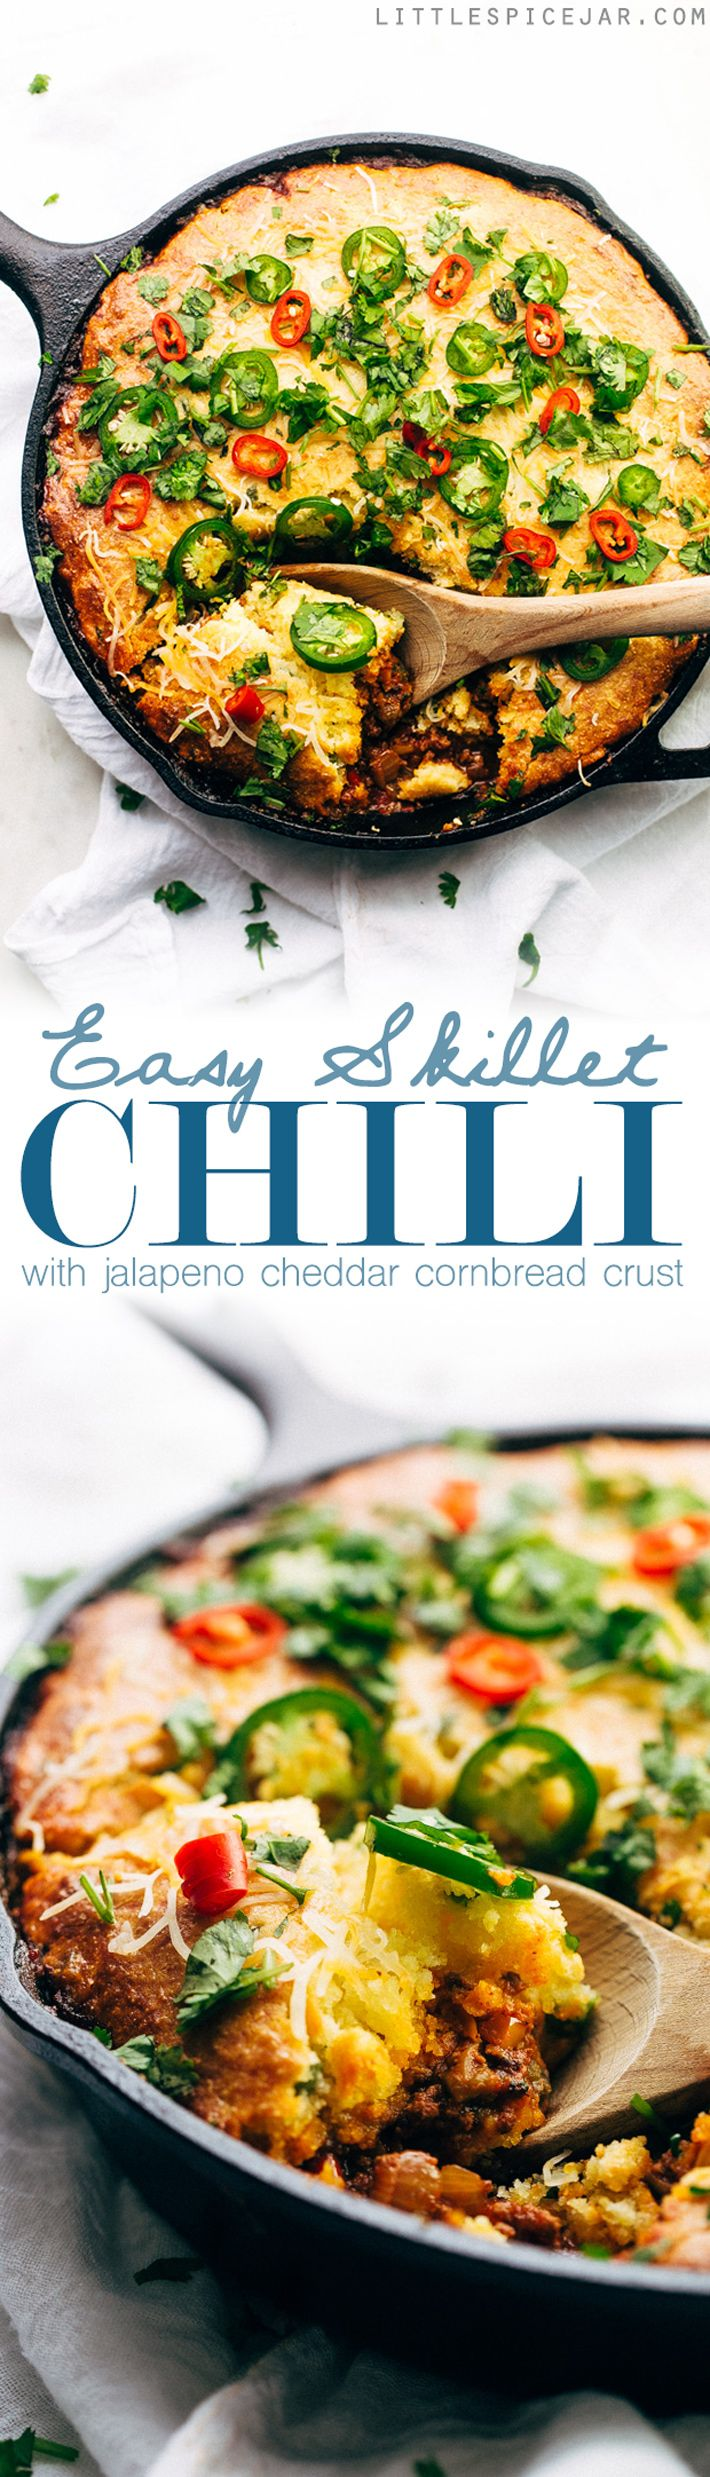 Skillet Chili with Jalapeño Cheddar Cornbread Crust - A simple chili and cornbread recipe that takes about an hour to make and had the cornbread baked right on top! #cornbread #chili #skilletchili #comfortfood   Littlespicejar.com